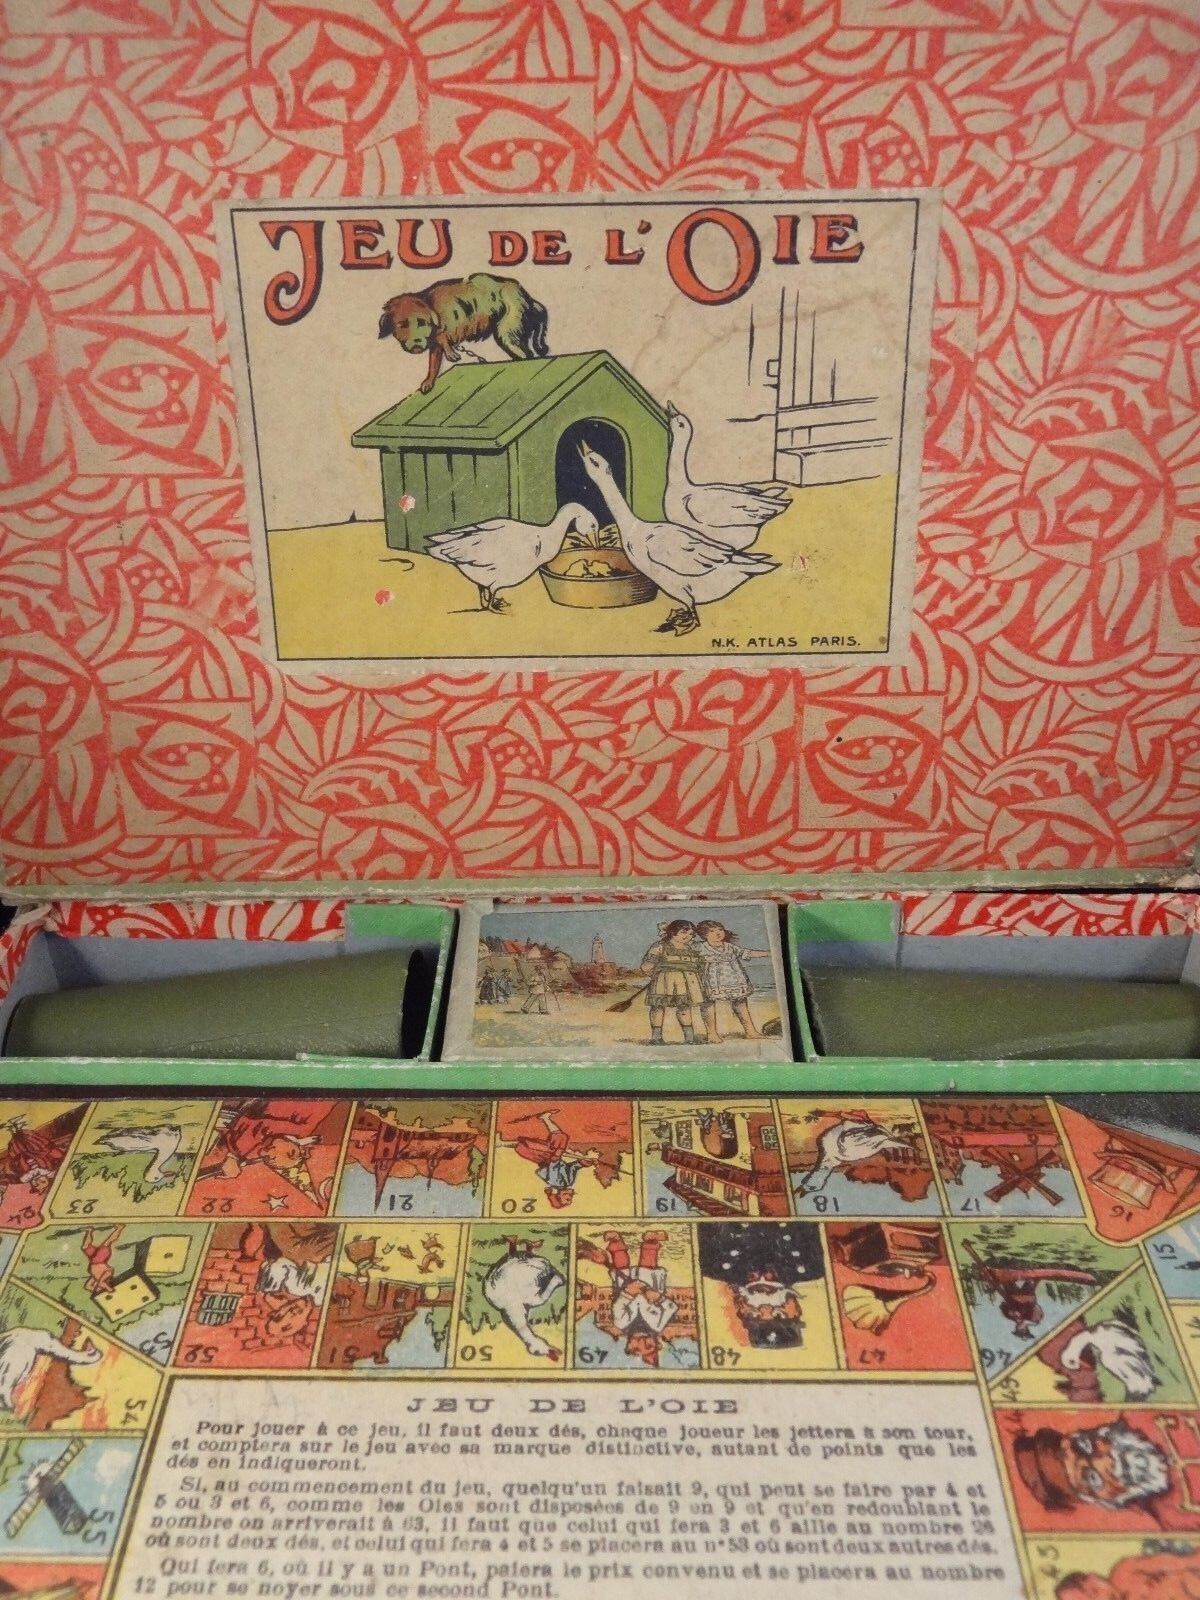 RARE ancien jouet coffret jeu de l'oie l'oie l'oie N.K ATLAS PARIS 1910/20 Made in France 1a3d7d